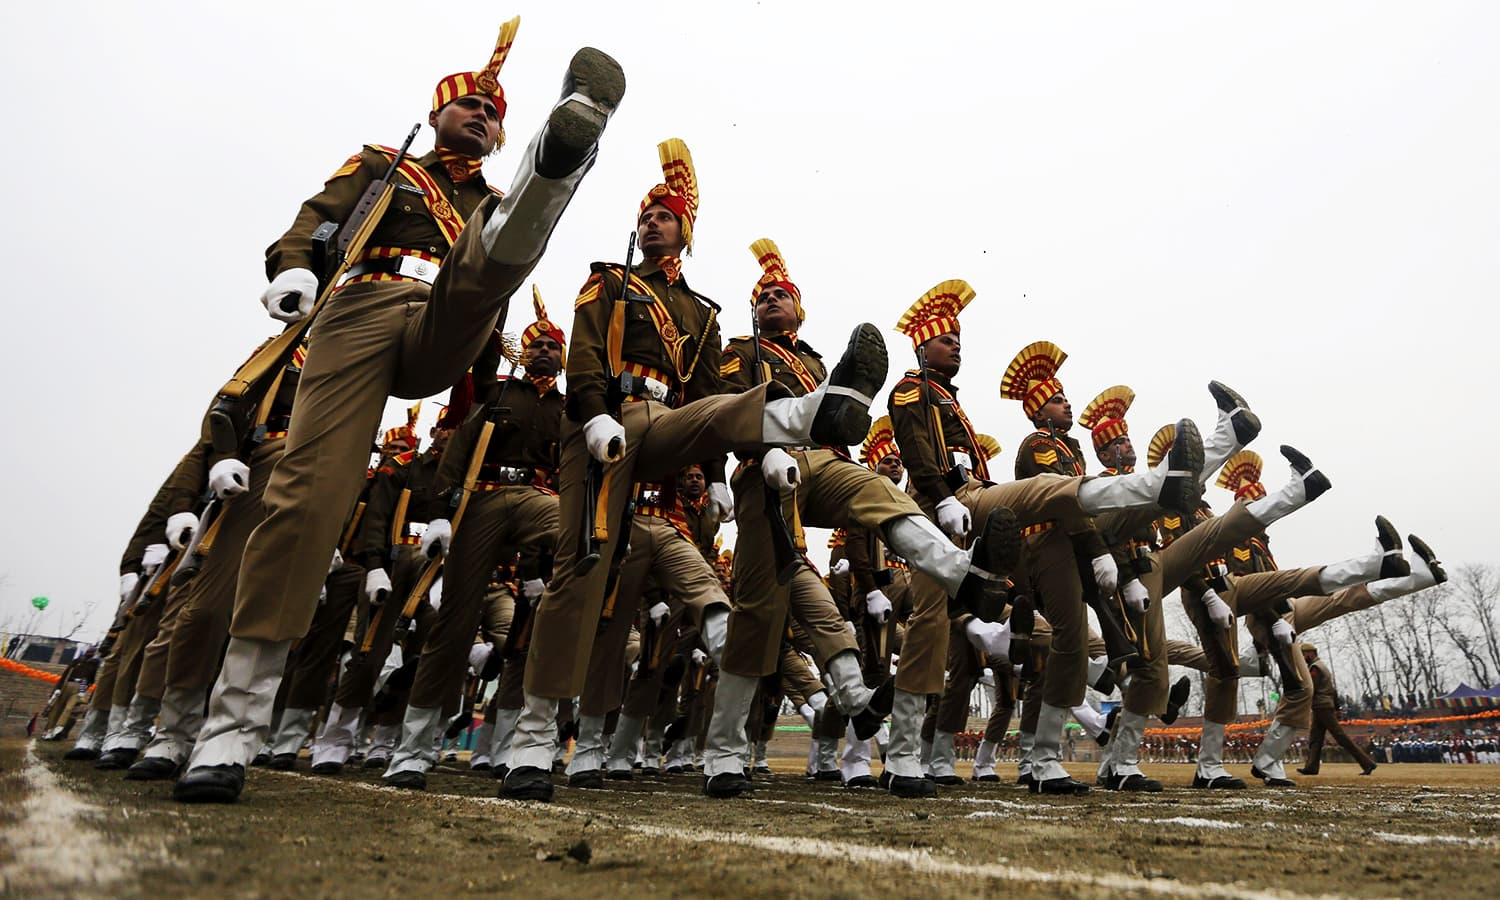 India's Border Security Force (BSF) soldiers march during India's Republic Day parade in Srinagar. ─ Reuters